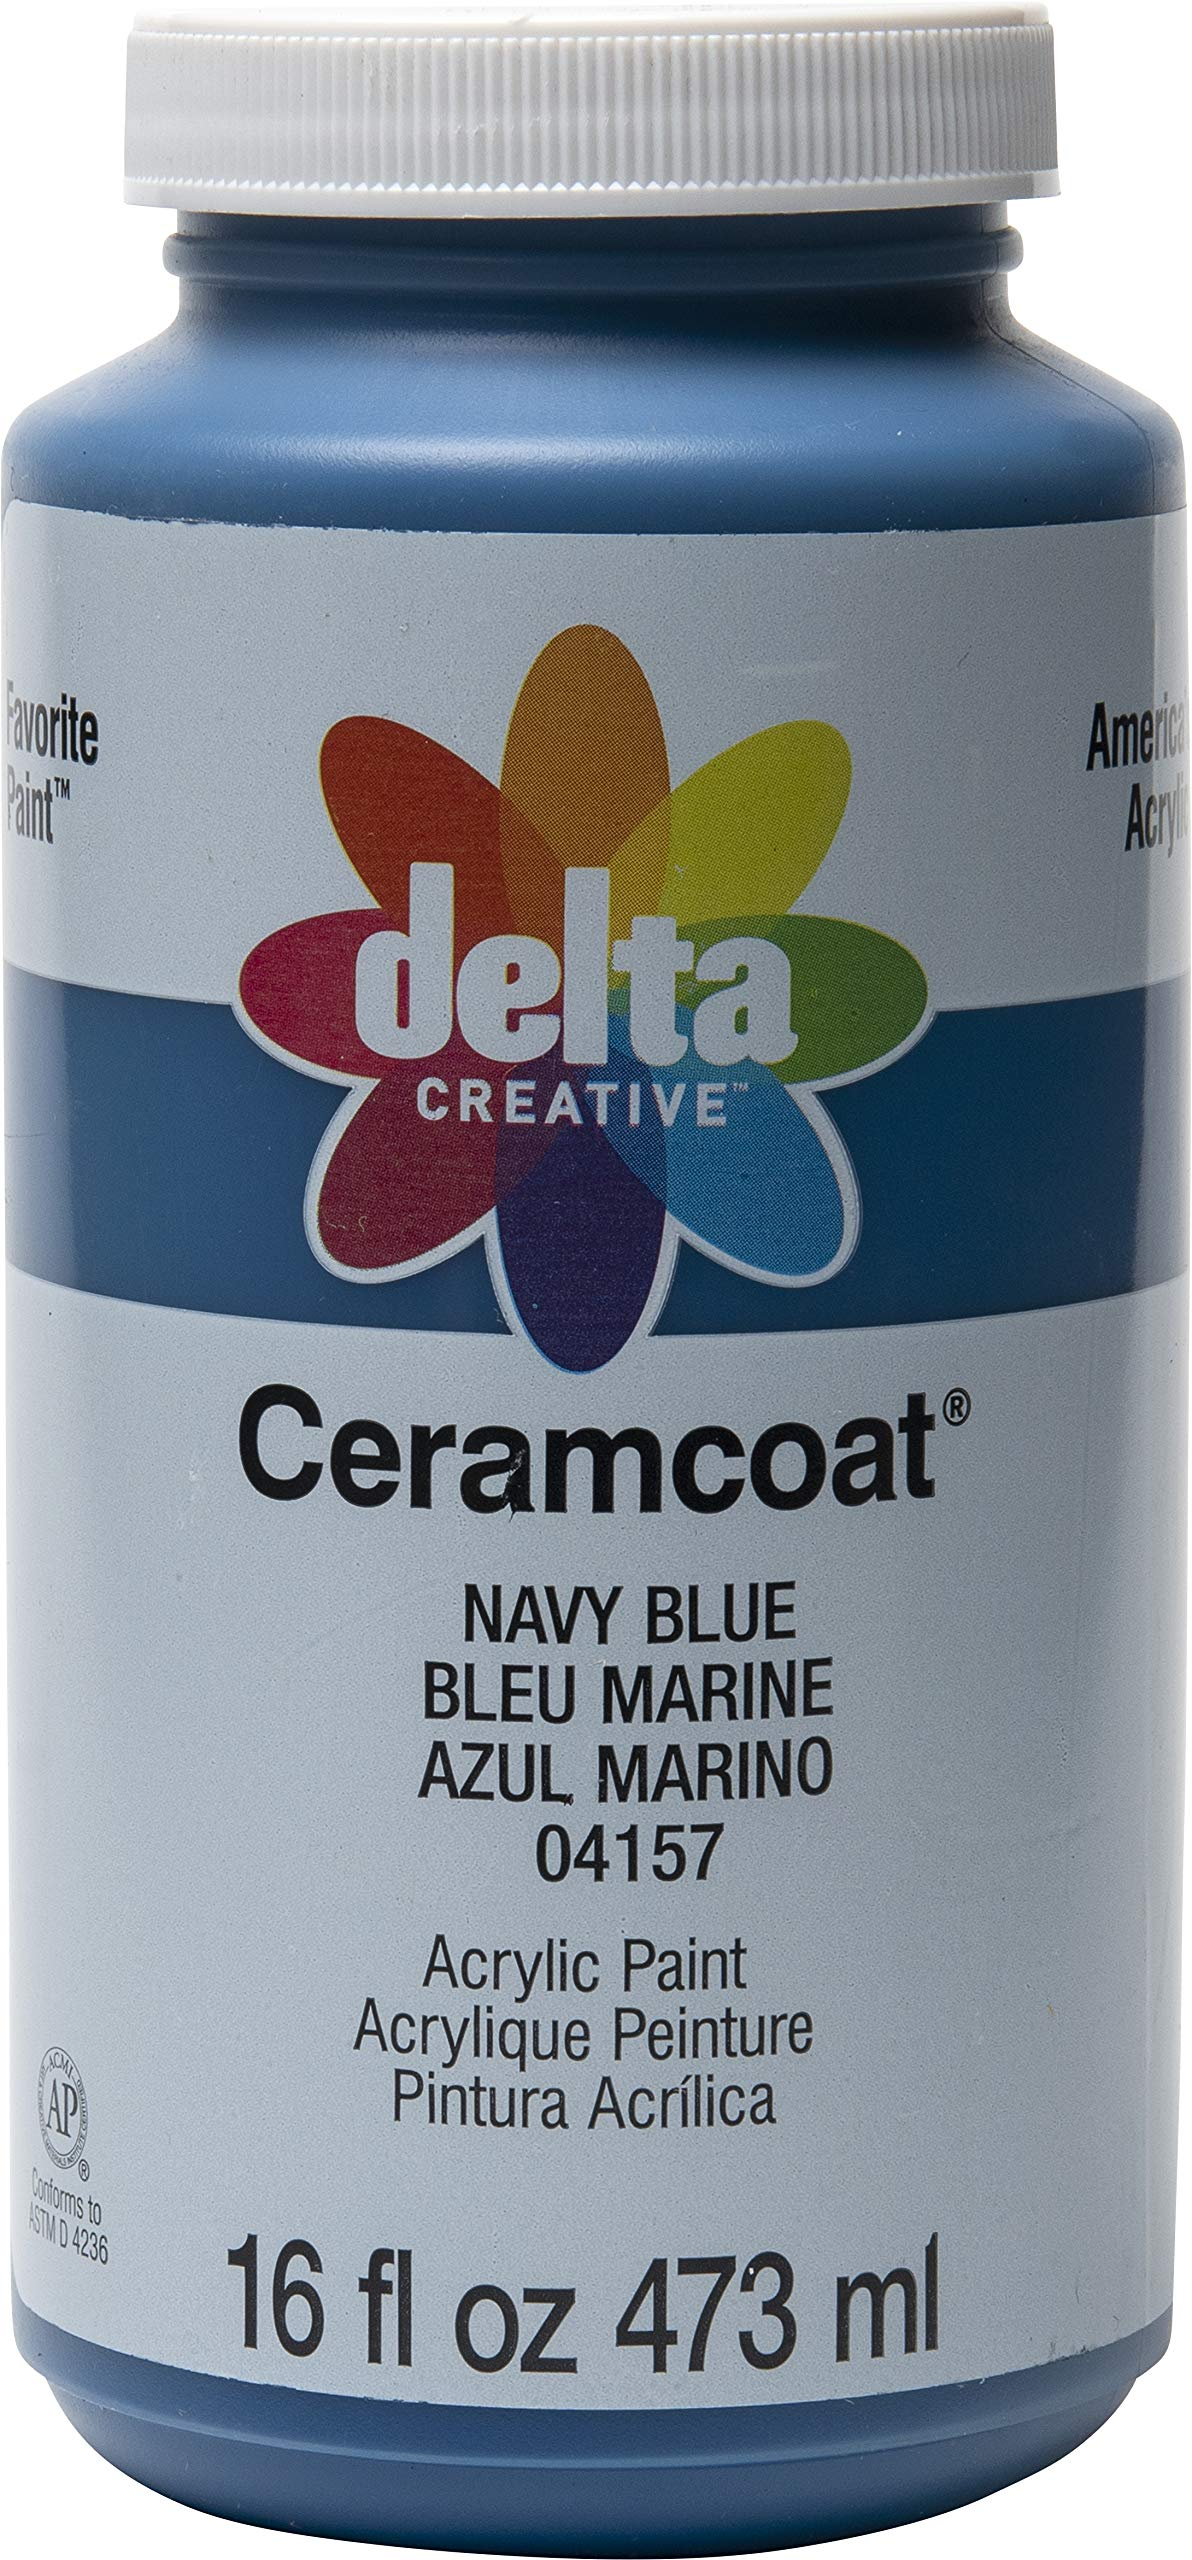 Delta Creative 04157 Ceramcoat Acrylic Paint in Assorted Colors, 16 oz, Navy Blue